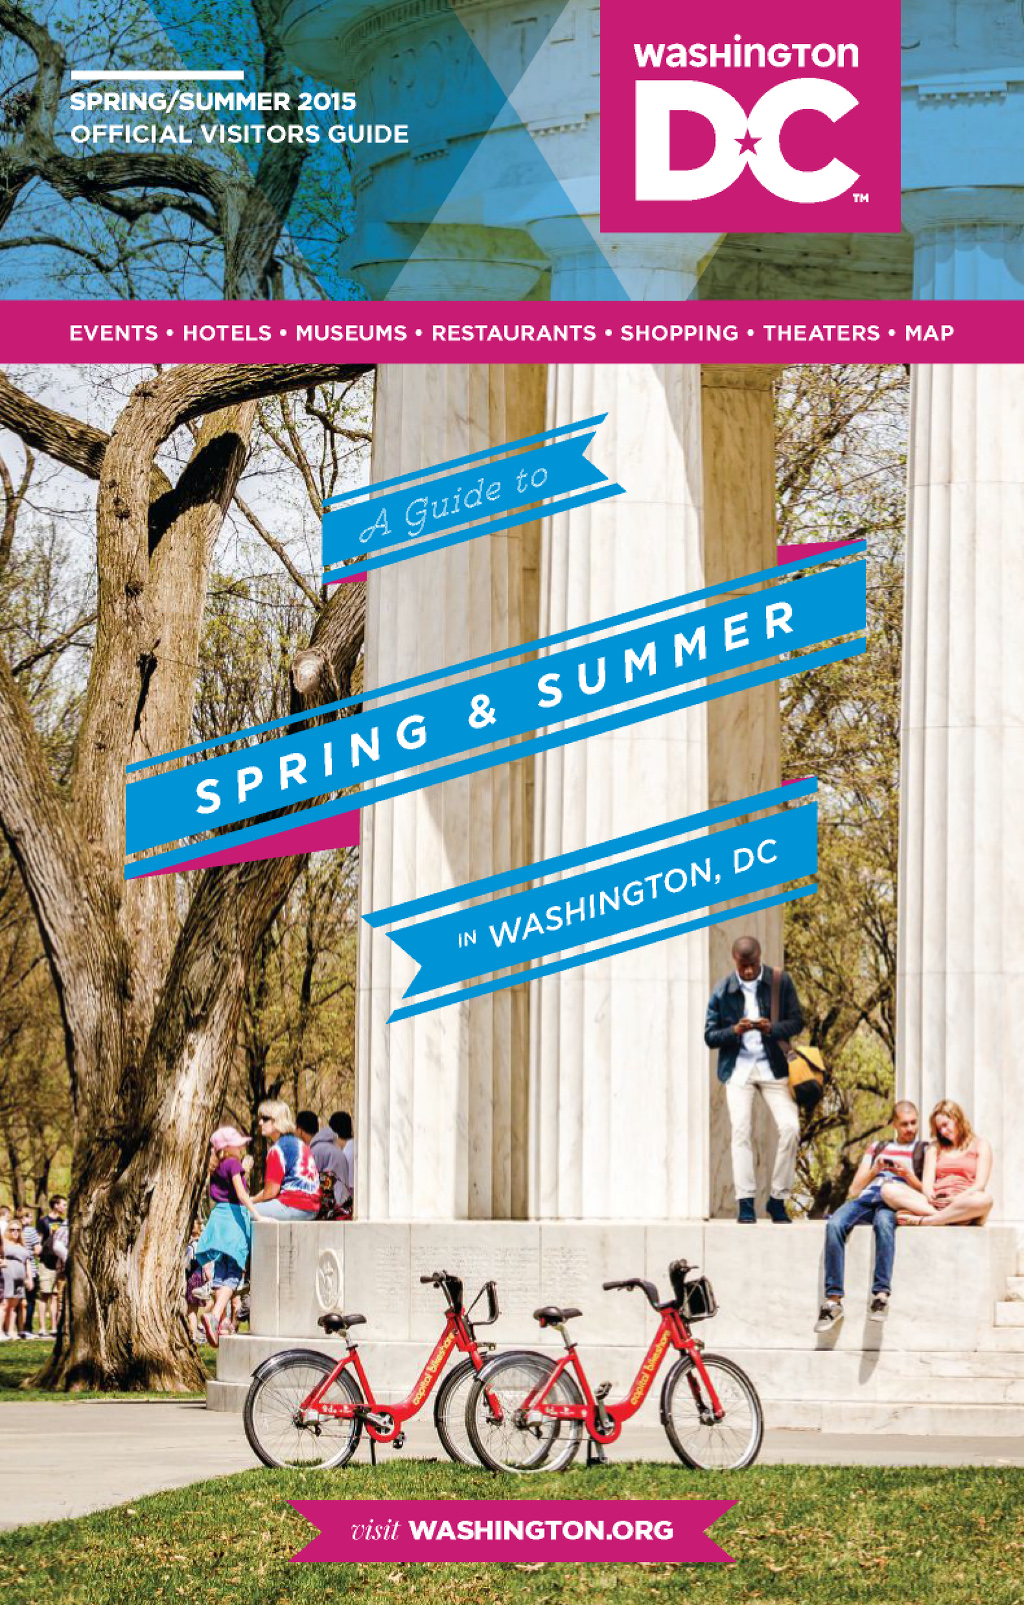 Washington DC Official Visitors Guide